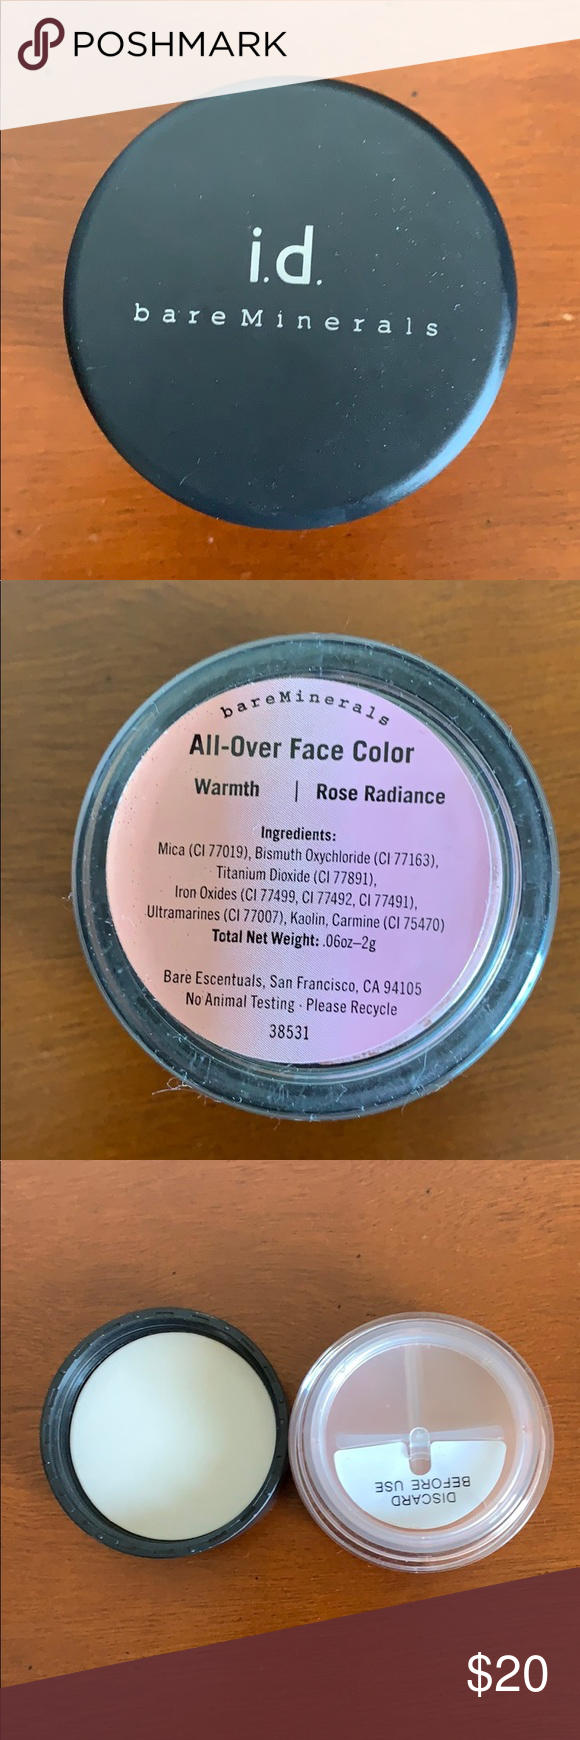 Bare Minerals All Over Face Color Foundation Bare Minerals Warmth Bare Minerals Makeup Hair Care Gifts